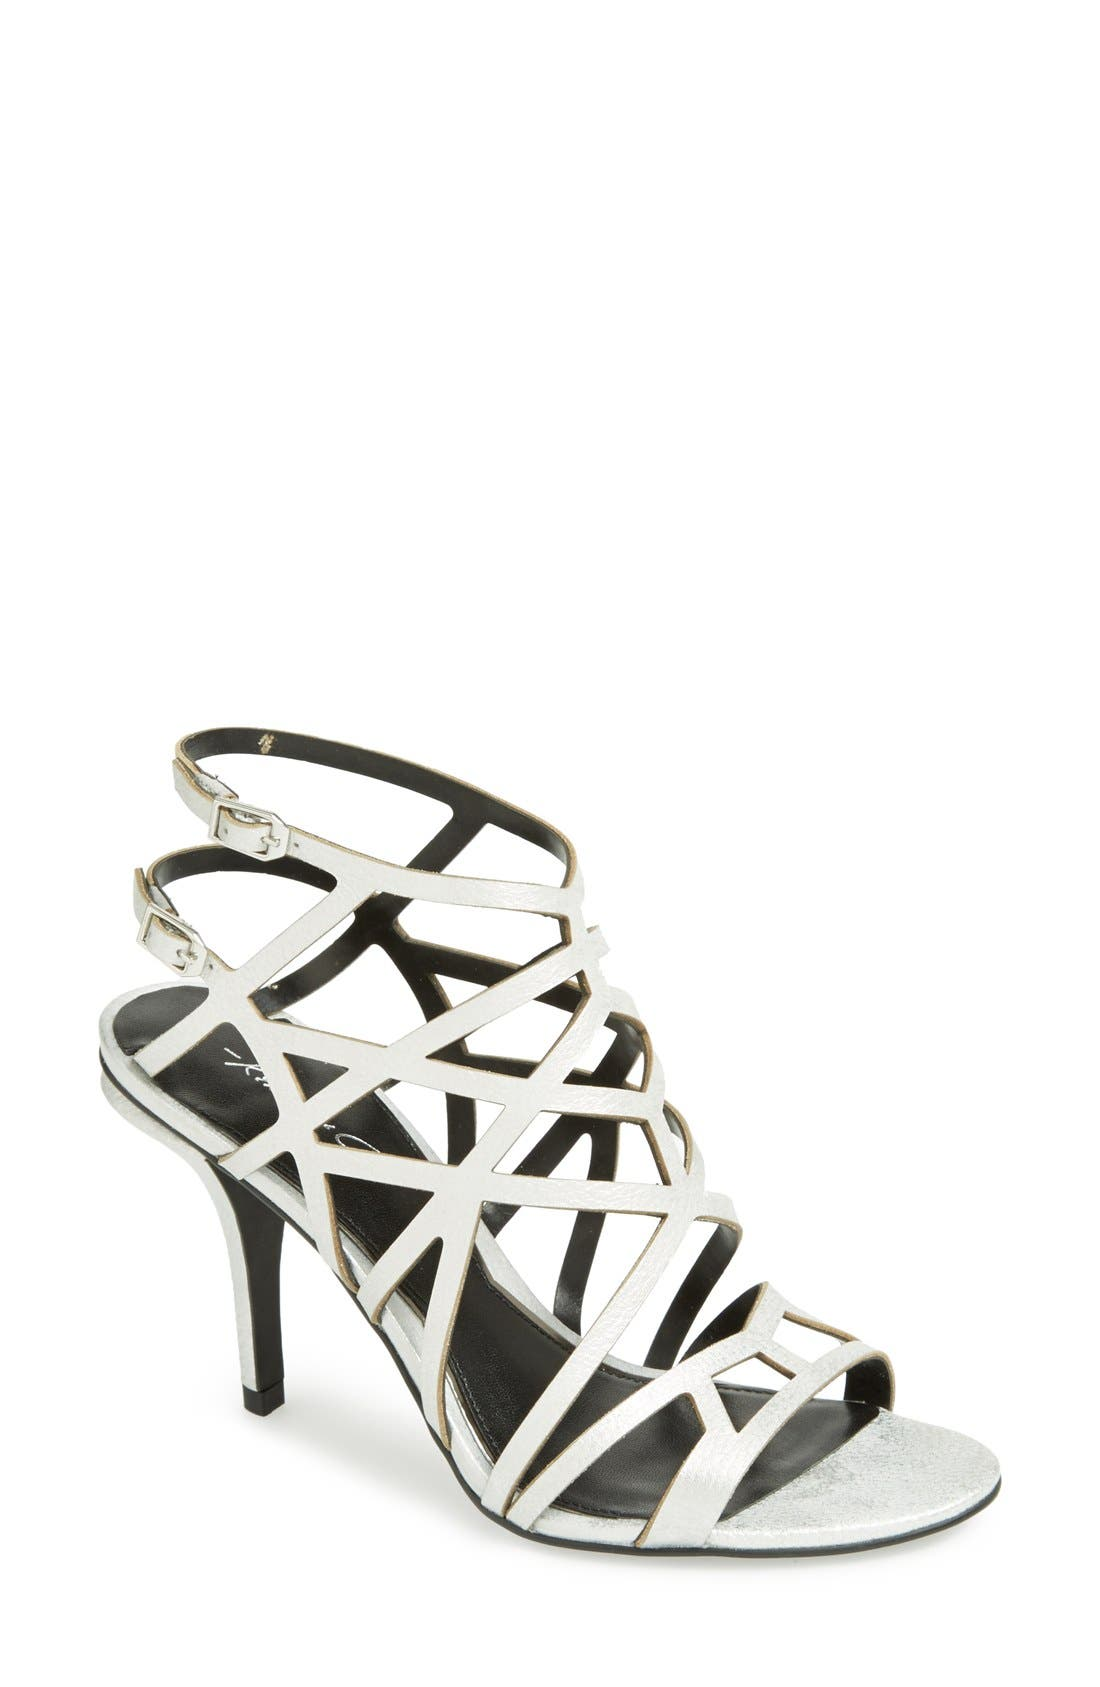 Alternate Image 1 Selected - Kenneth Cole New York Cage Sandal